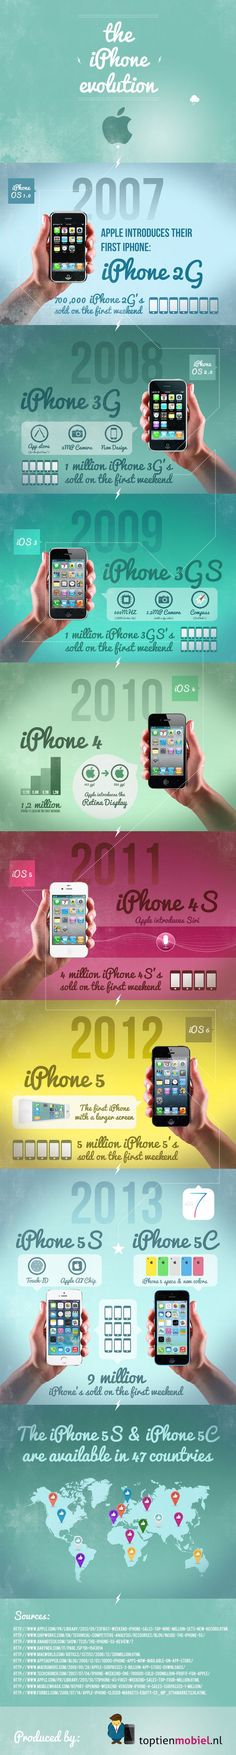 The #iPhone evolution since 2007